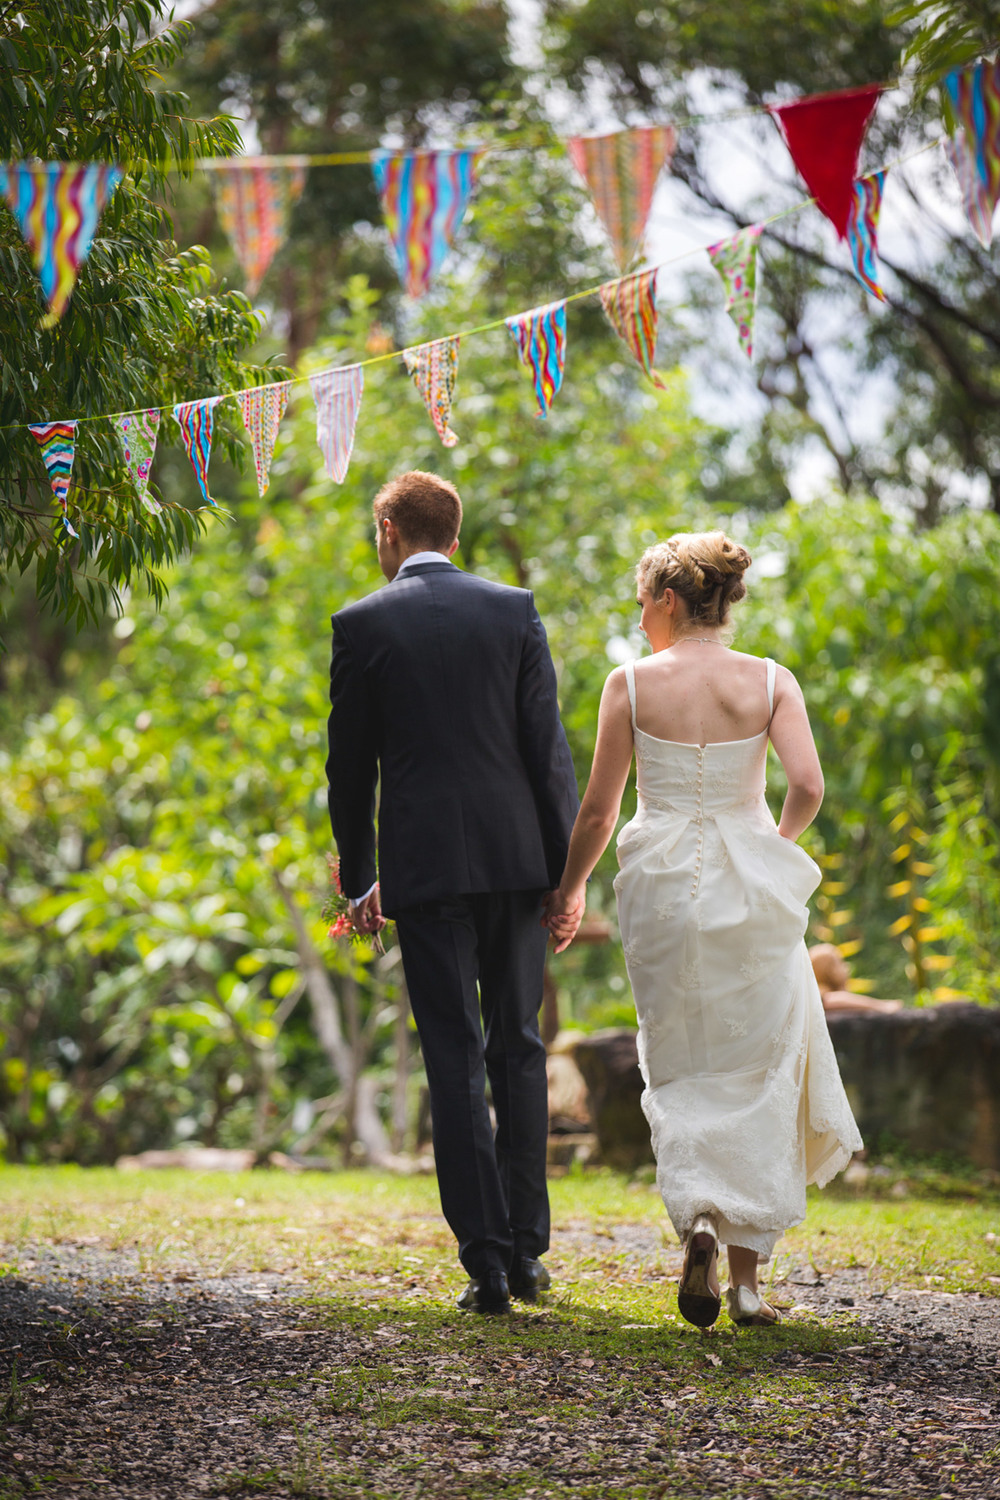 8-sunshine-coast-wedding-photography-all-the-love-in-the-world-noosa-mooloolaba-glasshouse-brisbane-katie-ryan5428.jpg